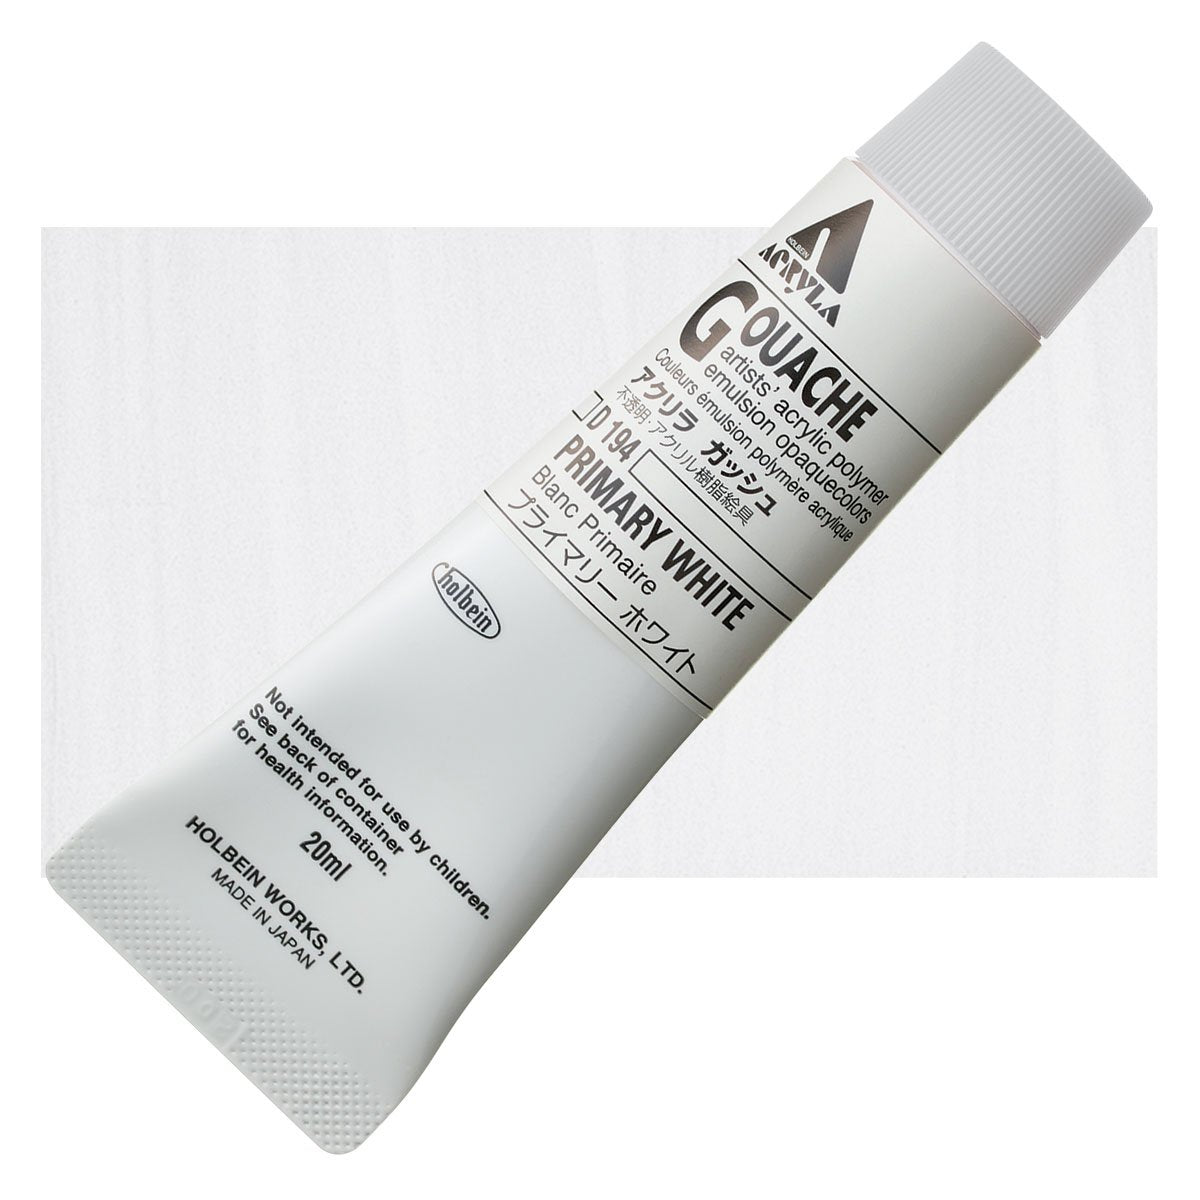 Holbein Acryla Gouache 20ml Tubes - Primary White by Holbein - K. A. Artist Shop